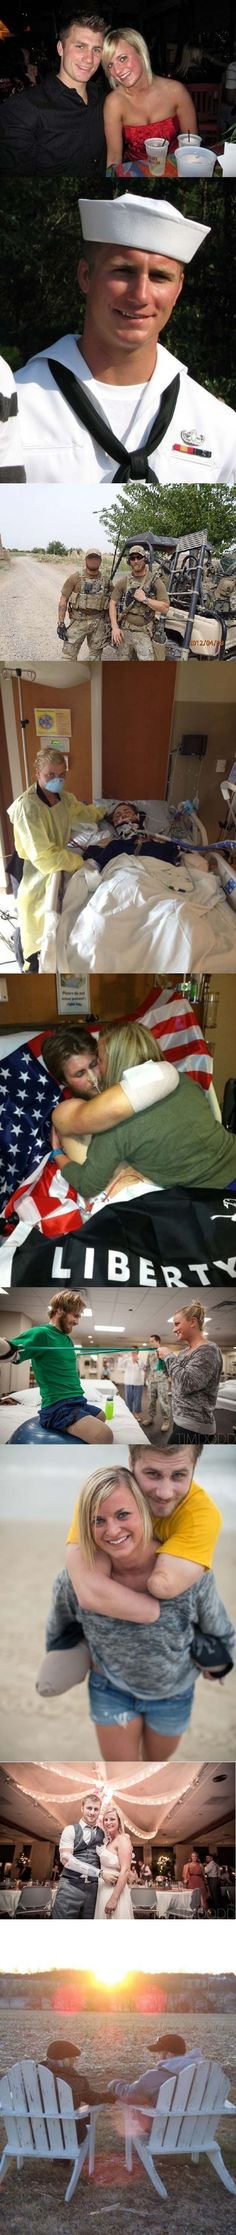 Taylor and Danielle Morris show that true love can overcome any obstacle. | The 35 Most Touching Photos Ever Taken